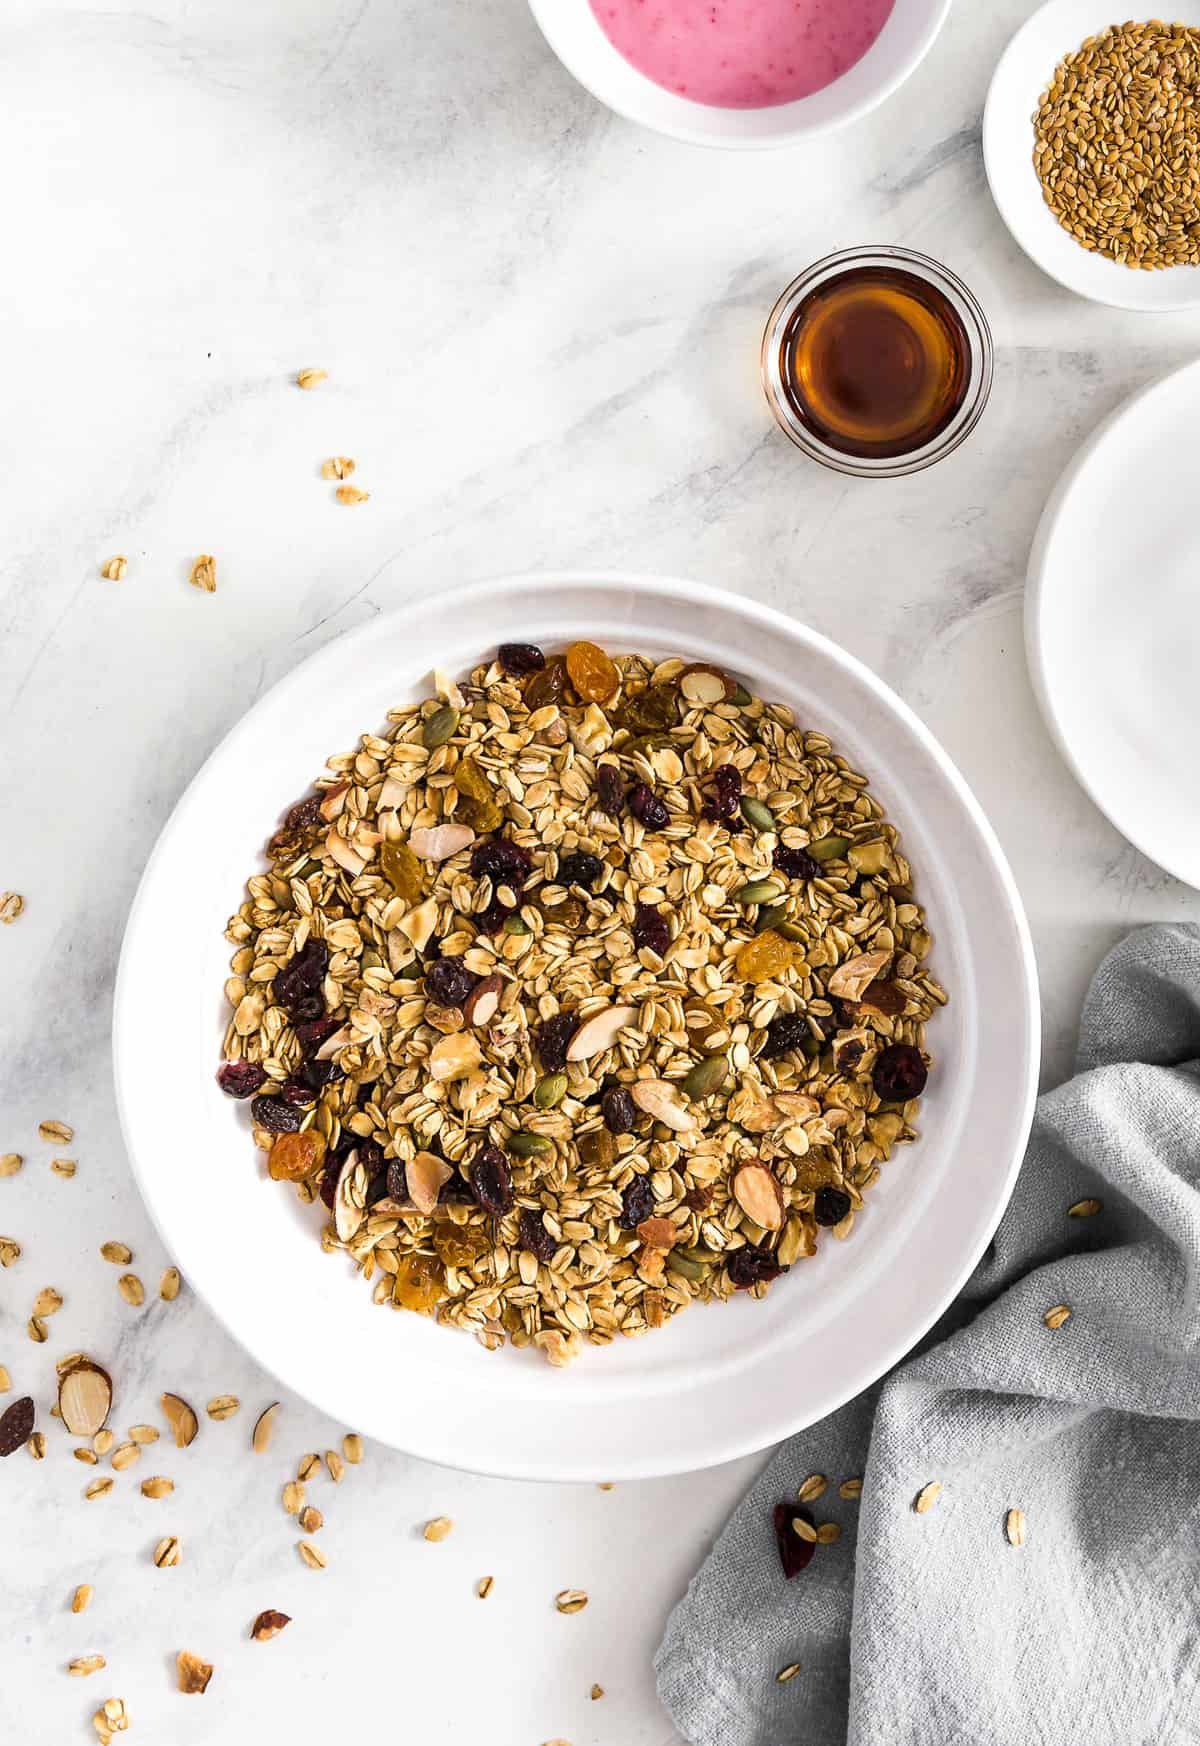 Vegan Muesli, Vegan breakfast, vegan oat breakfast, oat breakfast, muesli, oats, plant based breakfast, plant based, vegan, vegetarian, whole food plant based, gluten free, recipe, wfpb, healthy, healthy vegan, oil free, no refined sugar, no oil, refined sugar free, dairy free, dairy, dinner, lunch, healthy recipe,